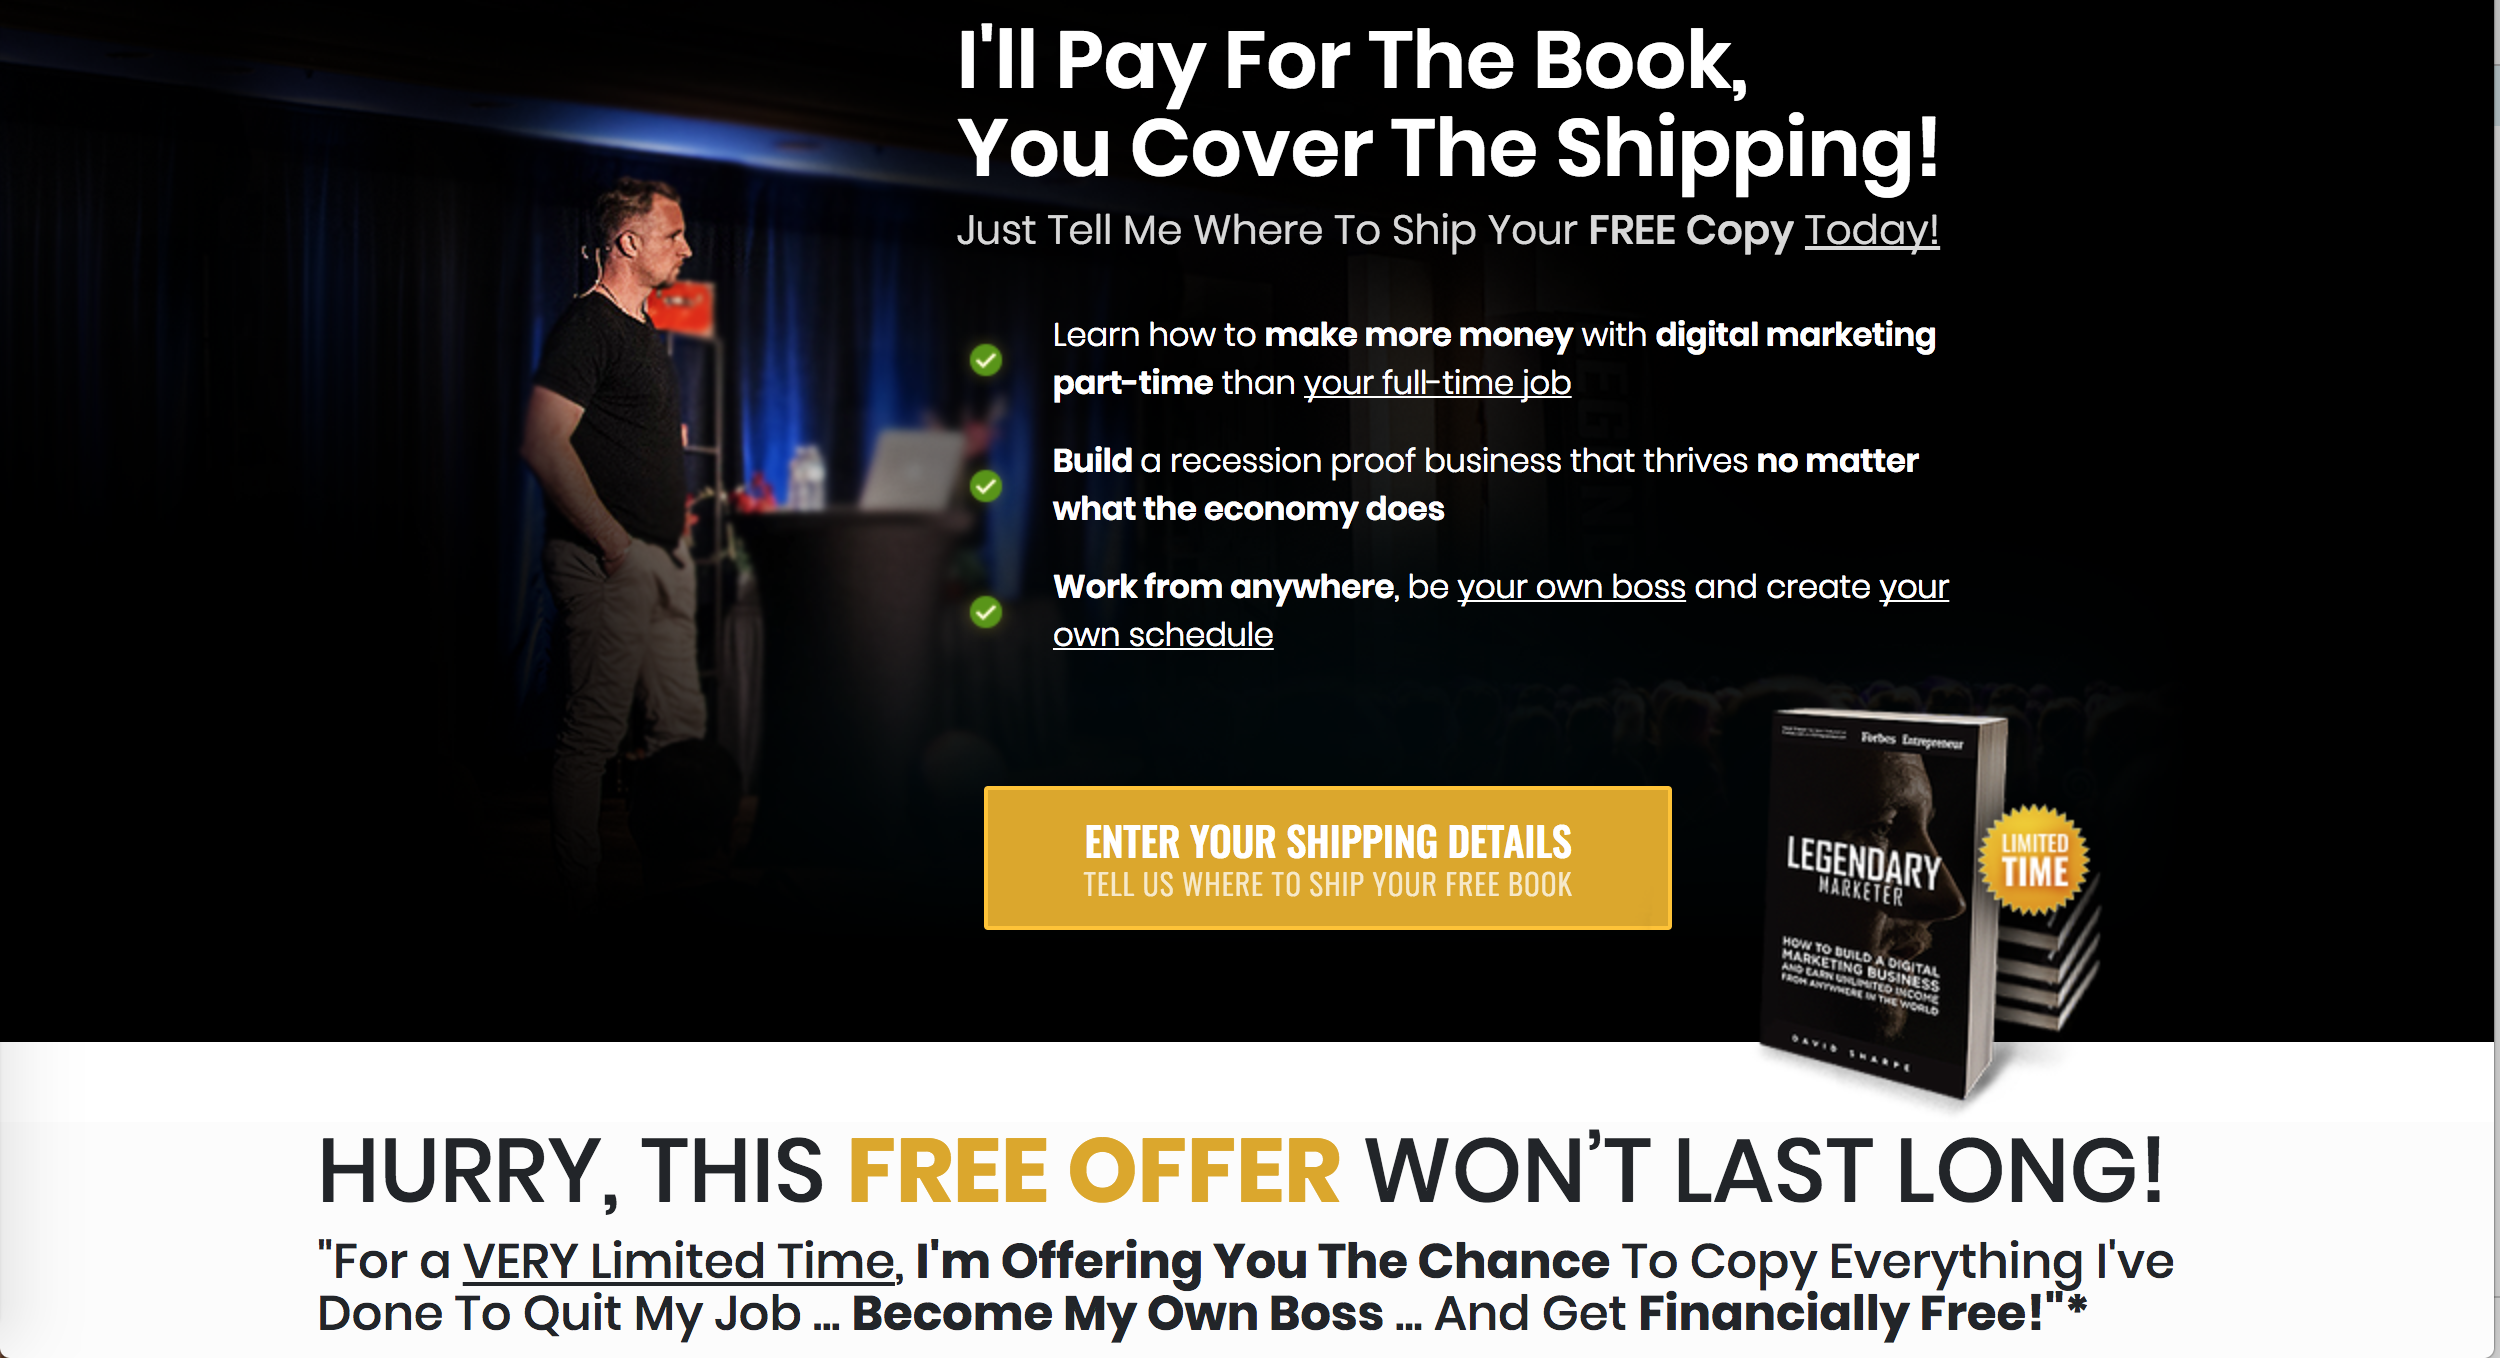 Under 400 Legendary Marketer Internet Marketing Program